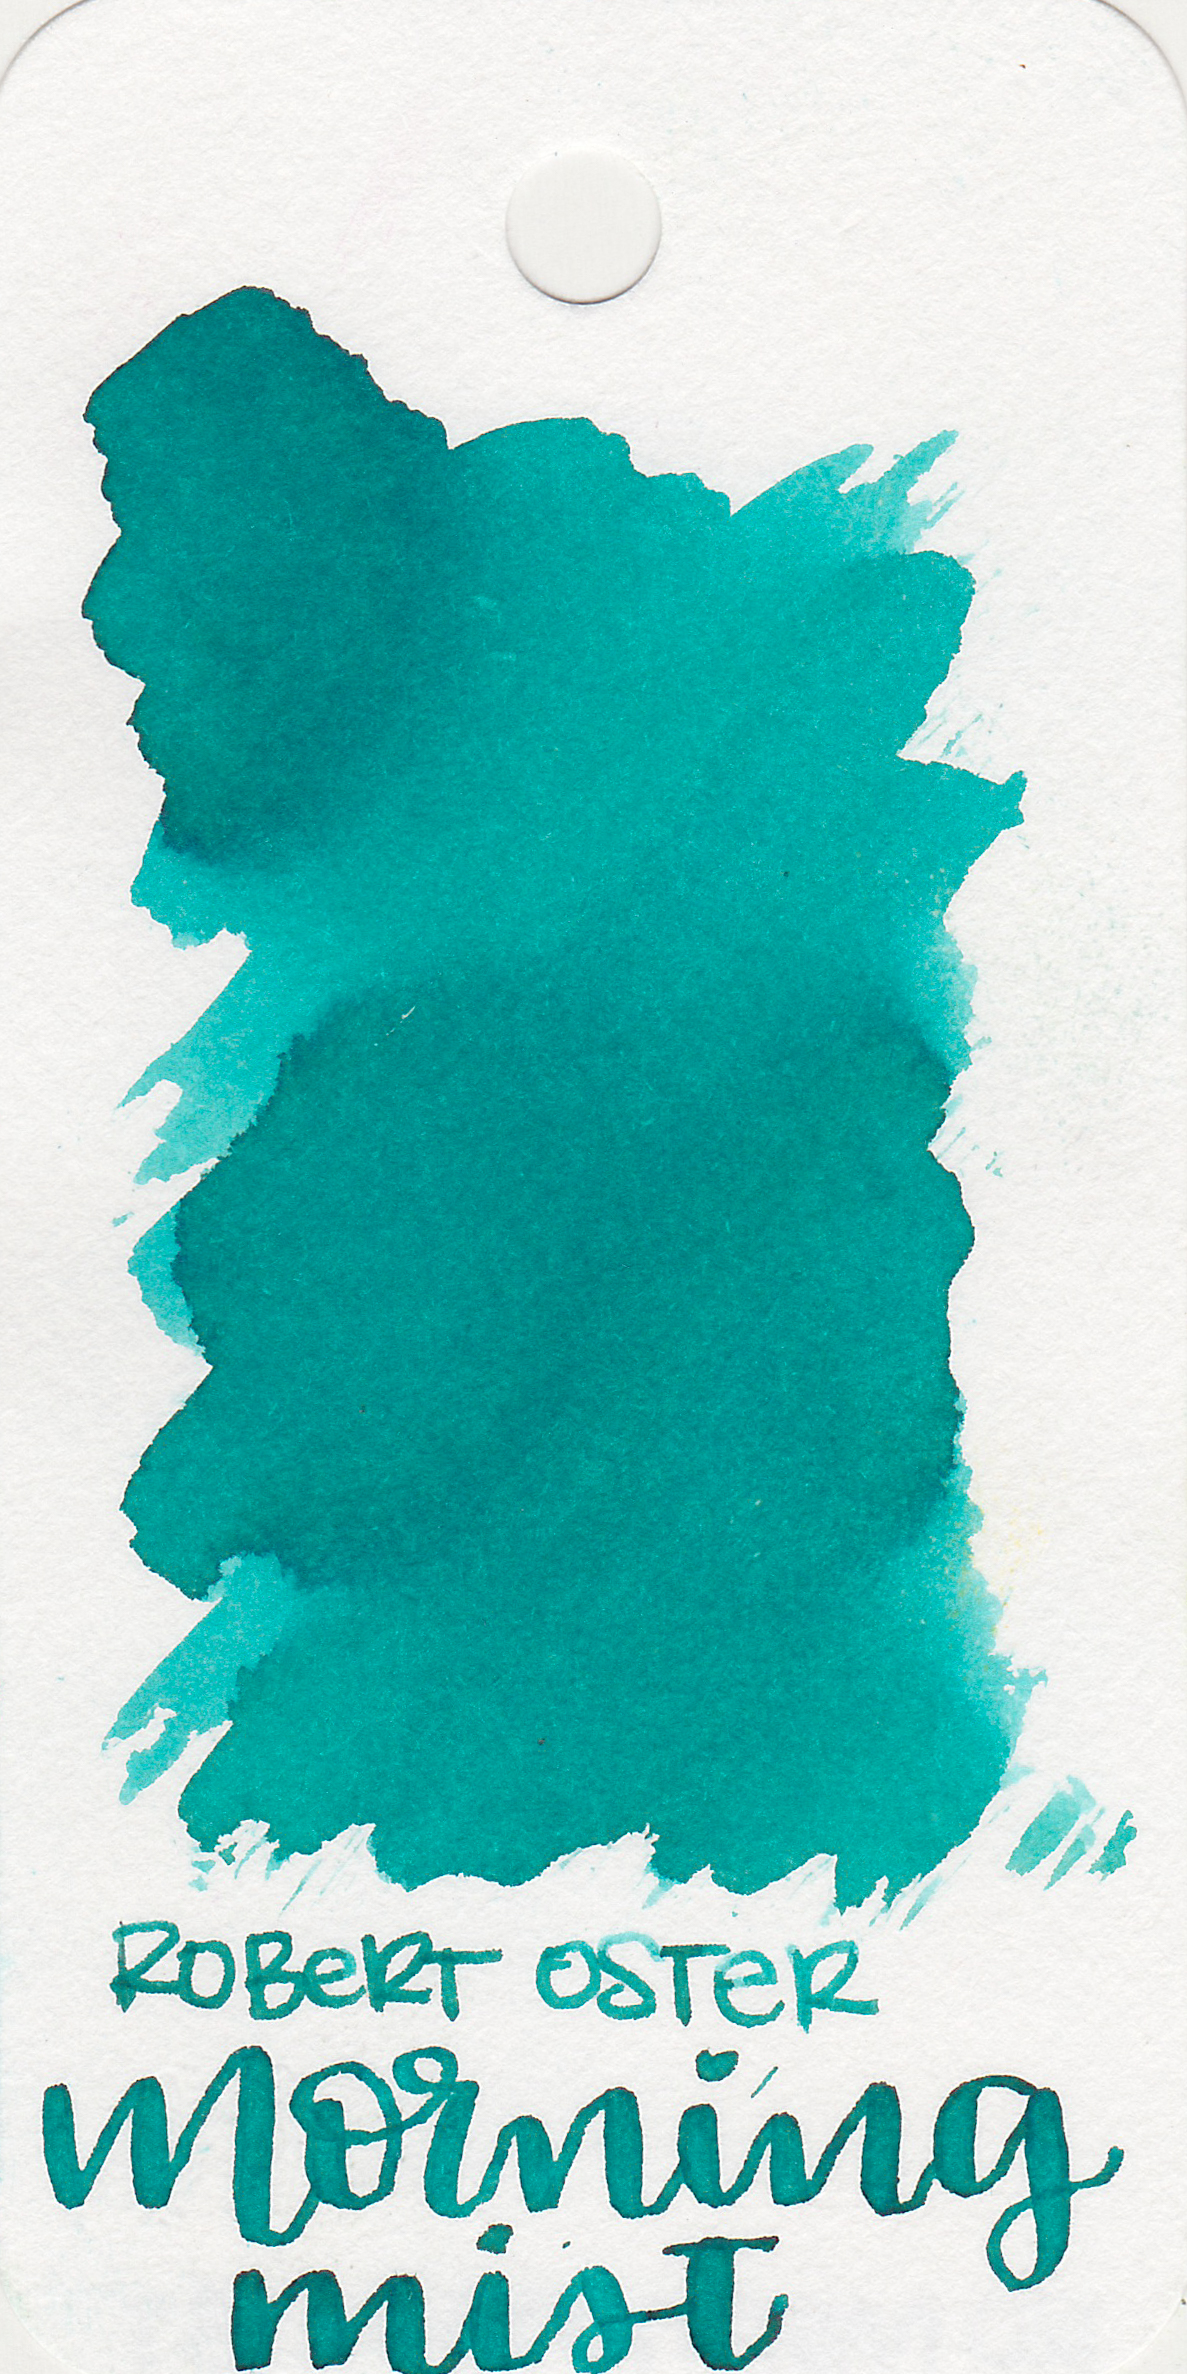 The color: - Morning Mist is a light blue-green.